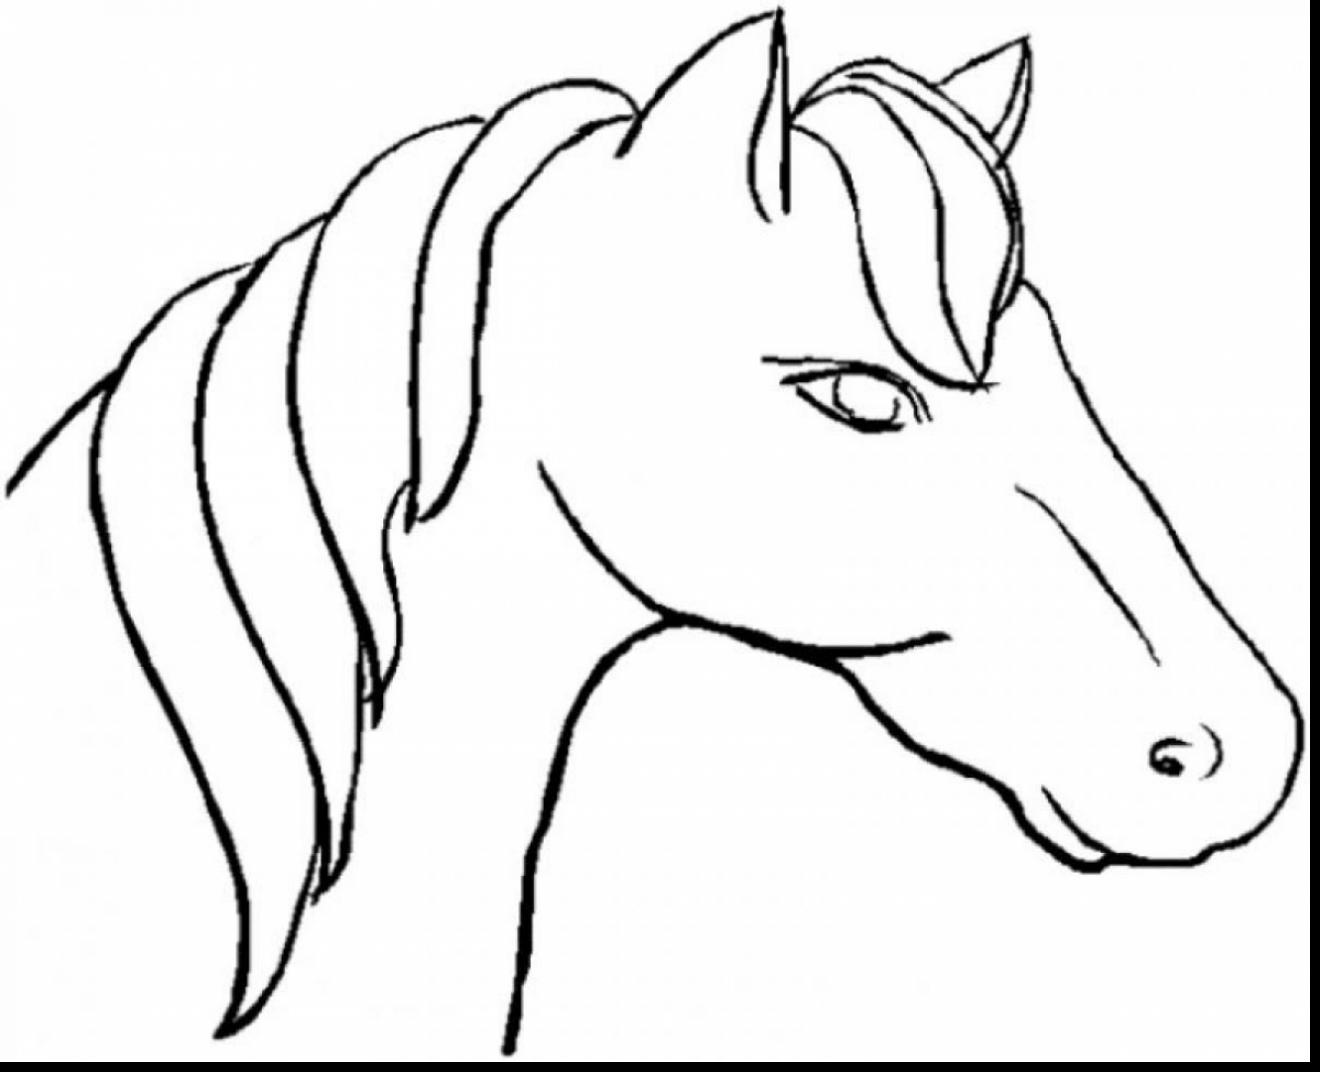 1320x1072 Horse Face Coloring Page Paginone.biz